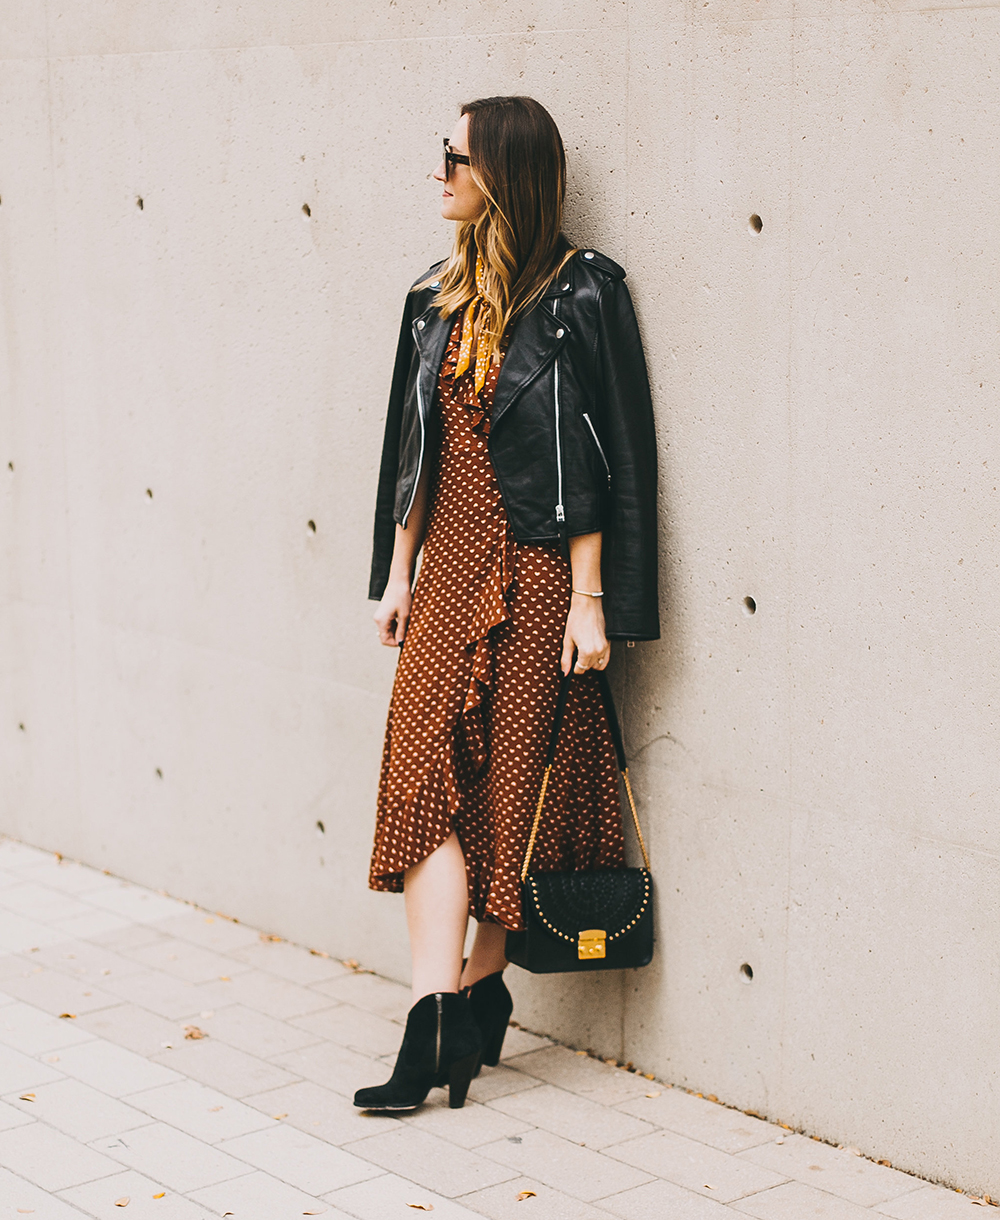 livvyland-blog-olivia-watson-austin-texas-fashion-blogger-urban-outfitters-wrap-dress-sezane-leather-jacket-fall-outfit-idea-2